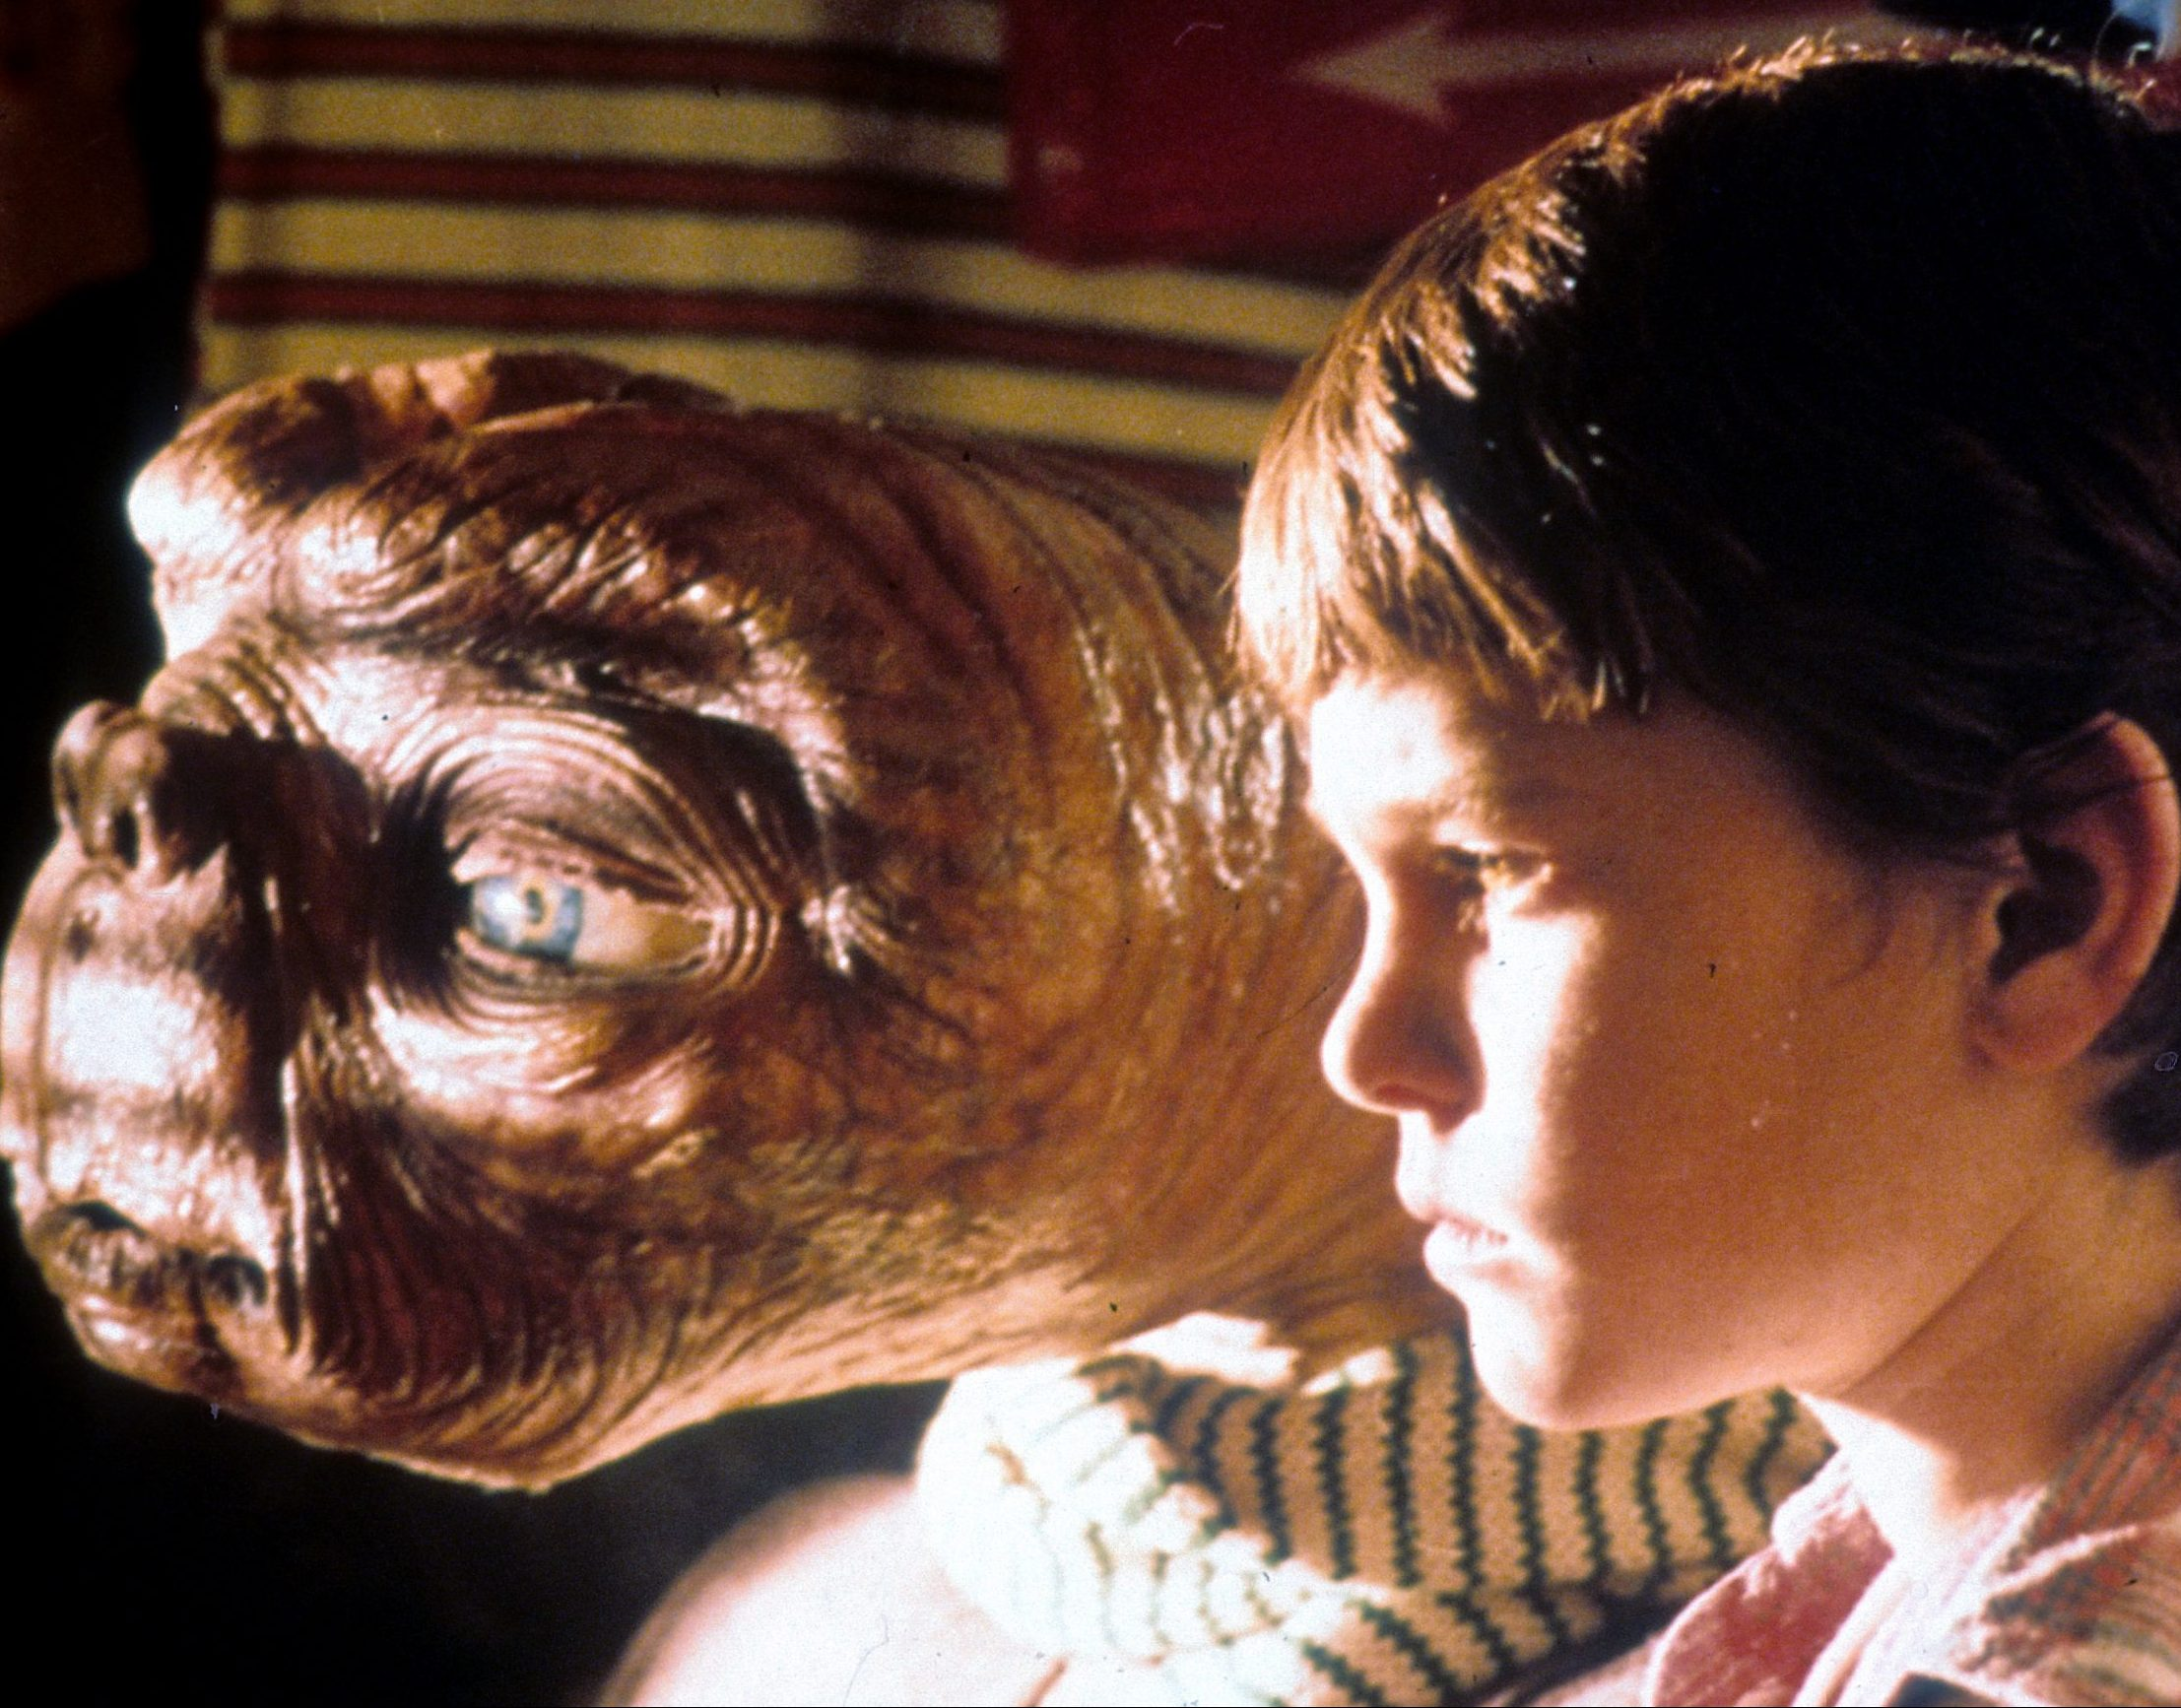 1 Tt2UY134s1JfFaLL64N8zw scaled e1608654759797 20 Things You Never Knew About E.T. The Extra-Terrestrial